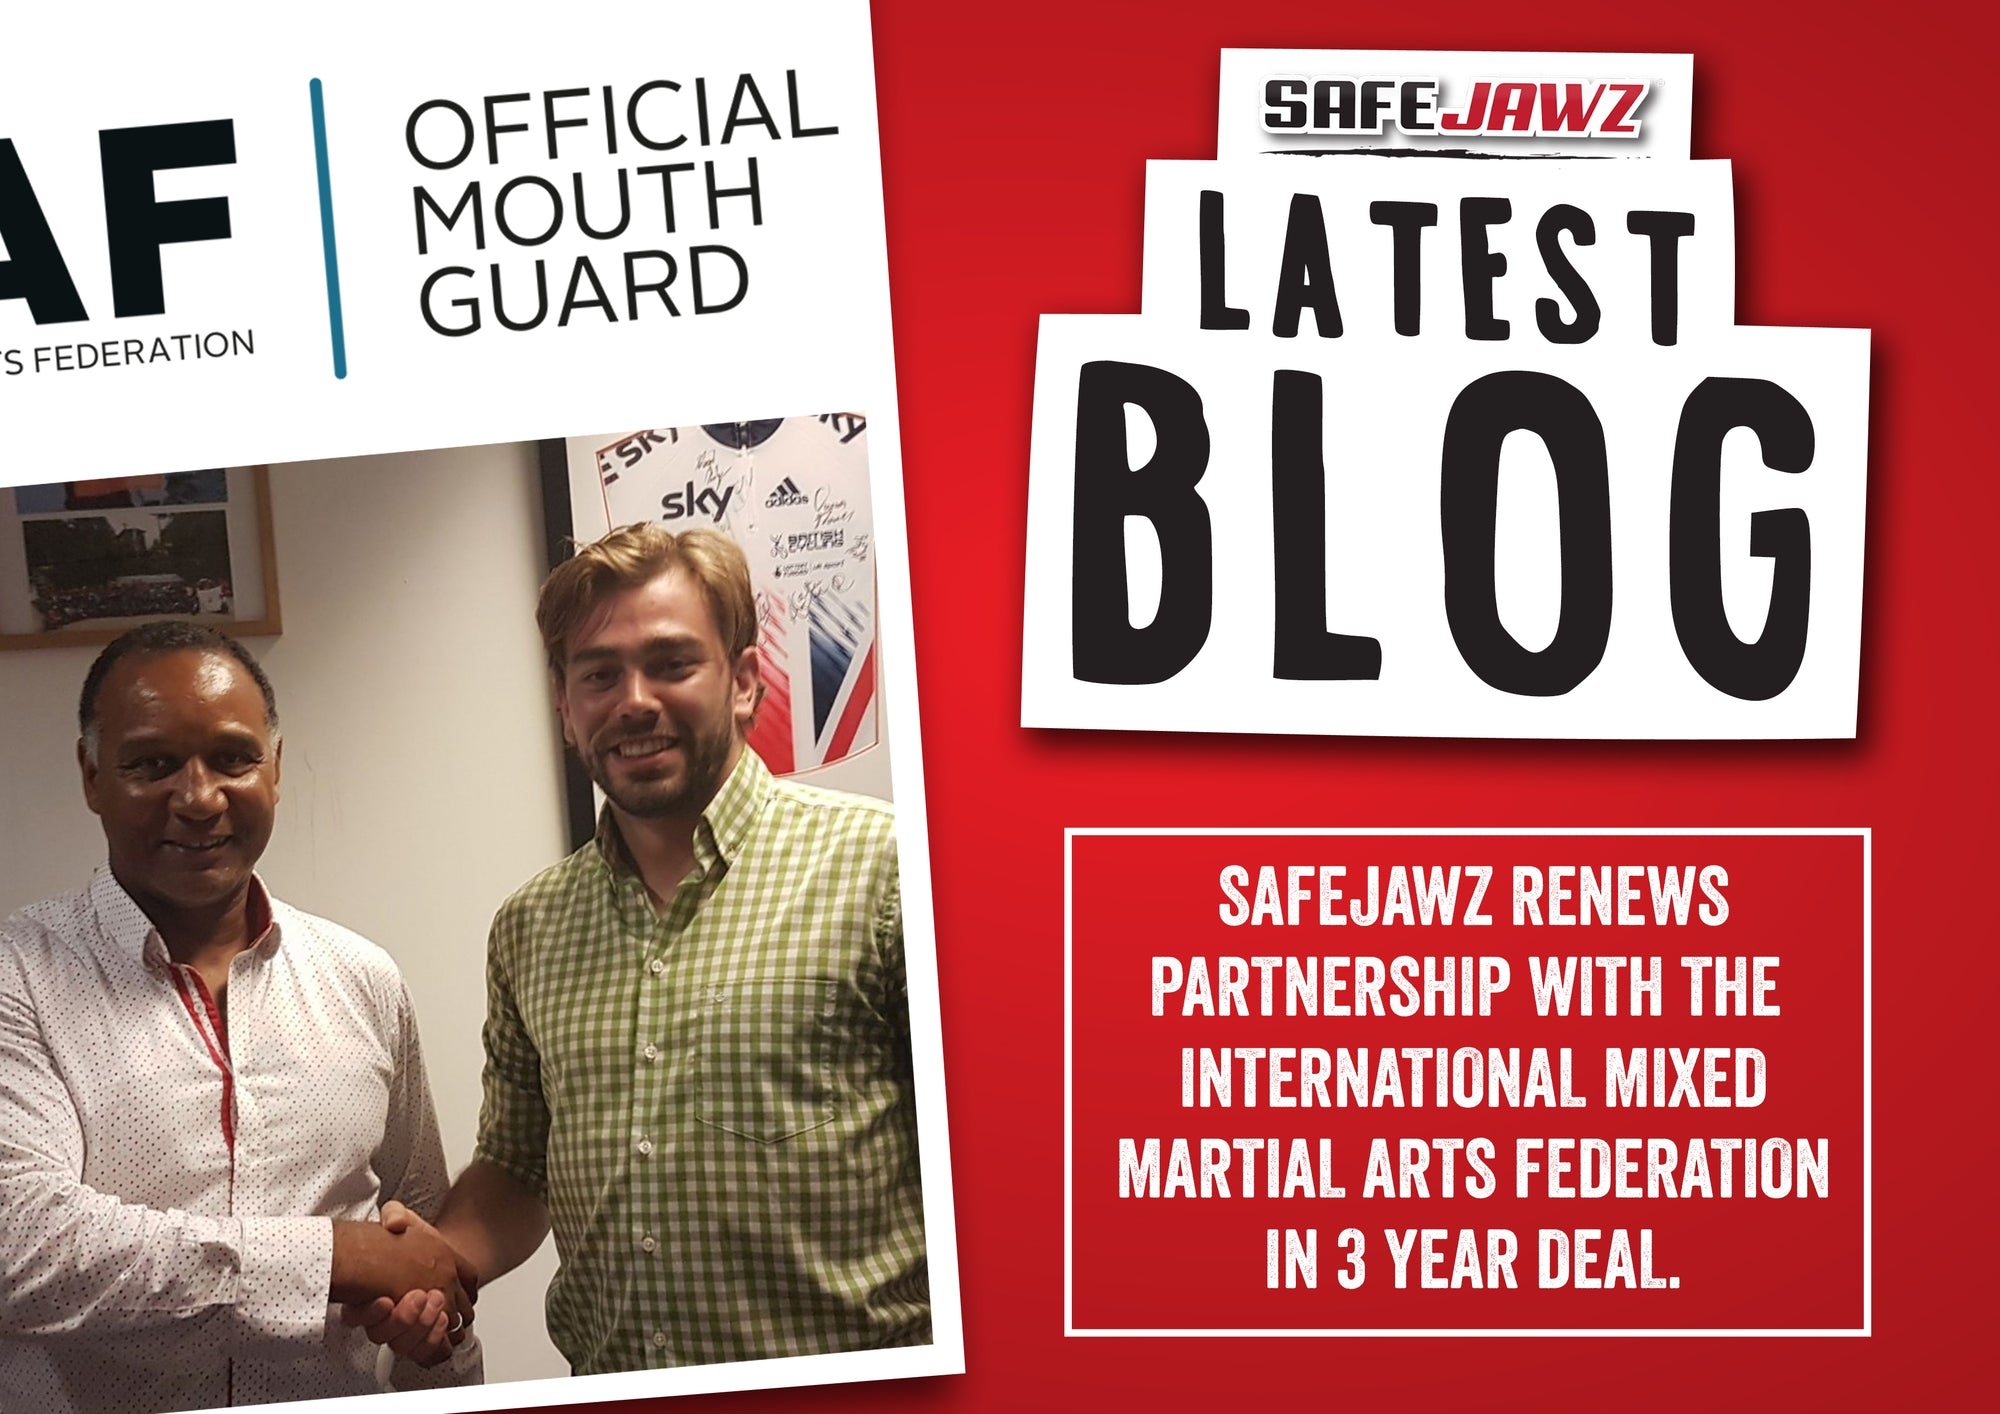 SAFEJAWZ Renew Partnership with the International Mixed Martial Arts Federation.